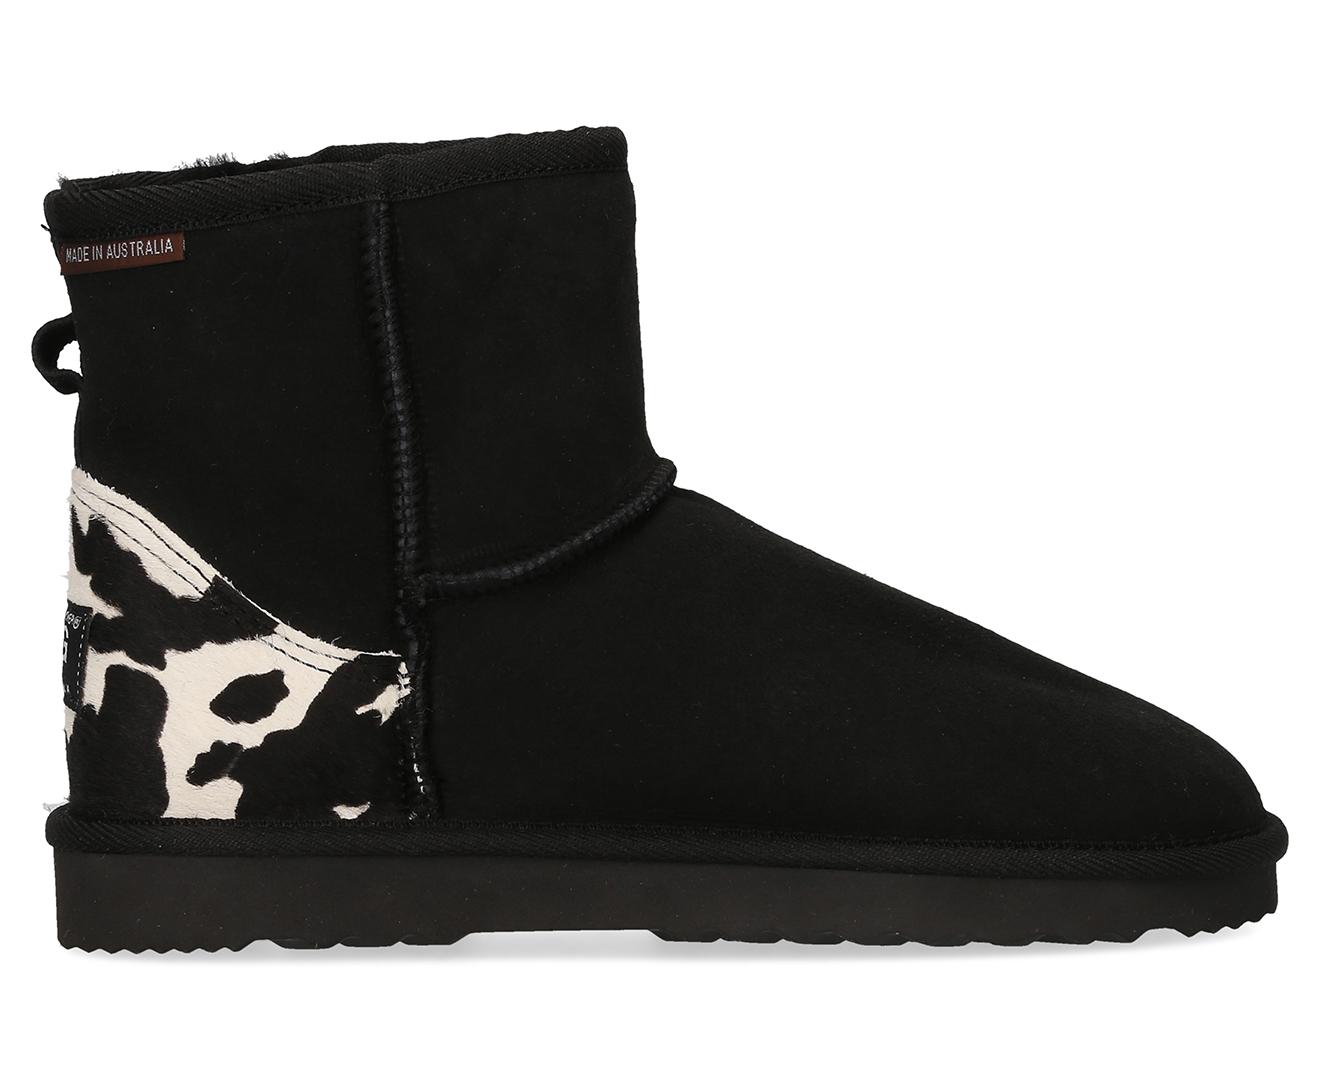 8e530f980ef Details about Australian Leather Classic Short Ugg Boot - Cow Print/Black